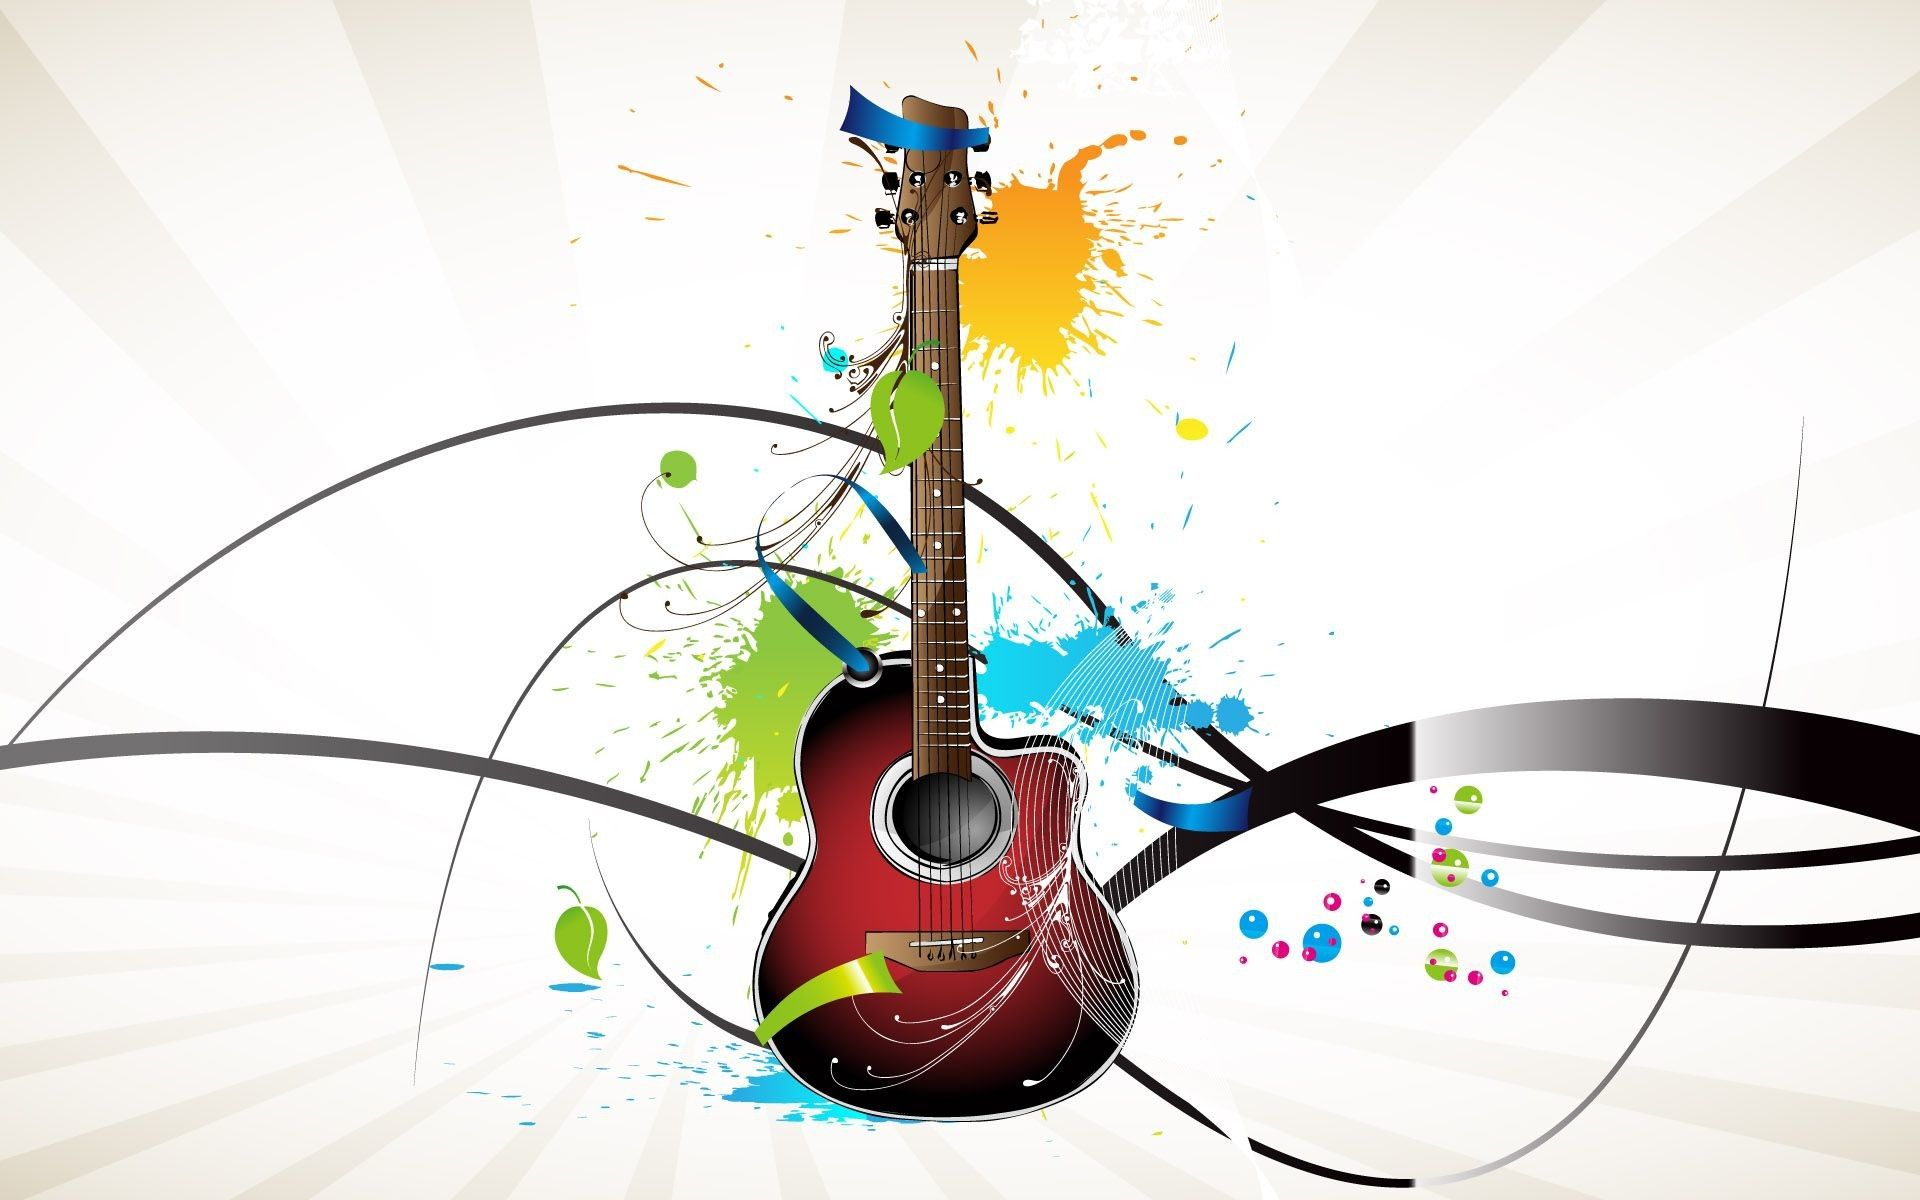 1920x1200 Beautiful Guitar With 3d Color Splash Wallpaper Hd 3d And Abstract Wallpaper Free Download Music Wallpaper Wallpaper Backgrounds Color Splash